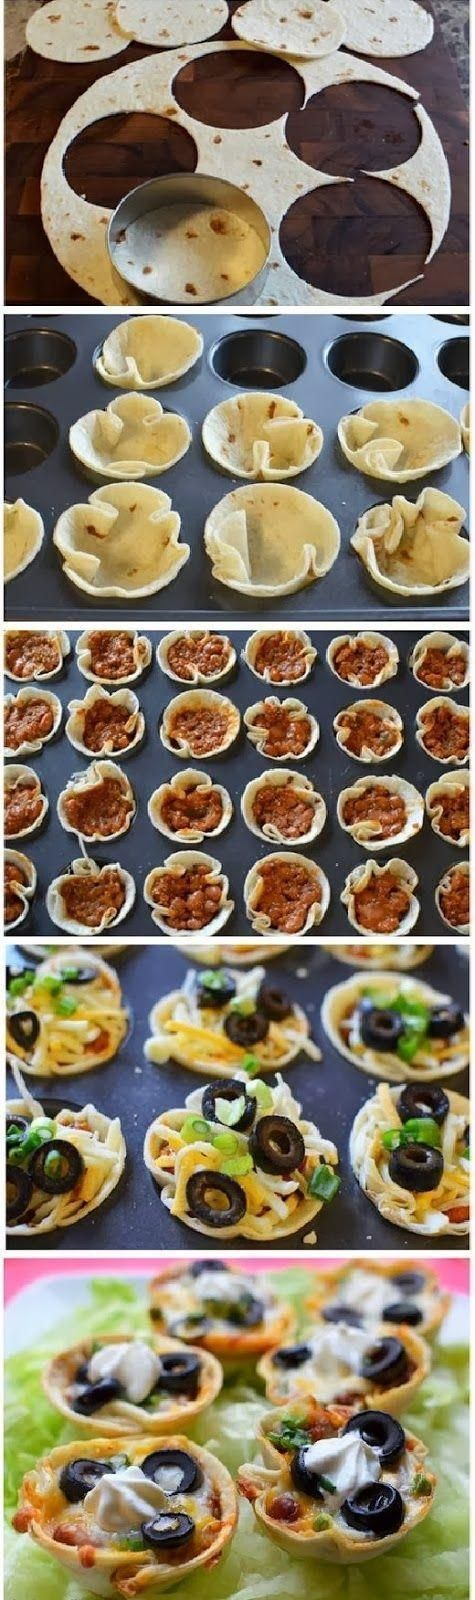 Mini Tacos are perfect for any #SuperBowl Party! #Football